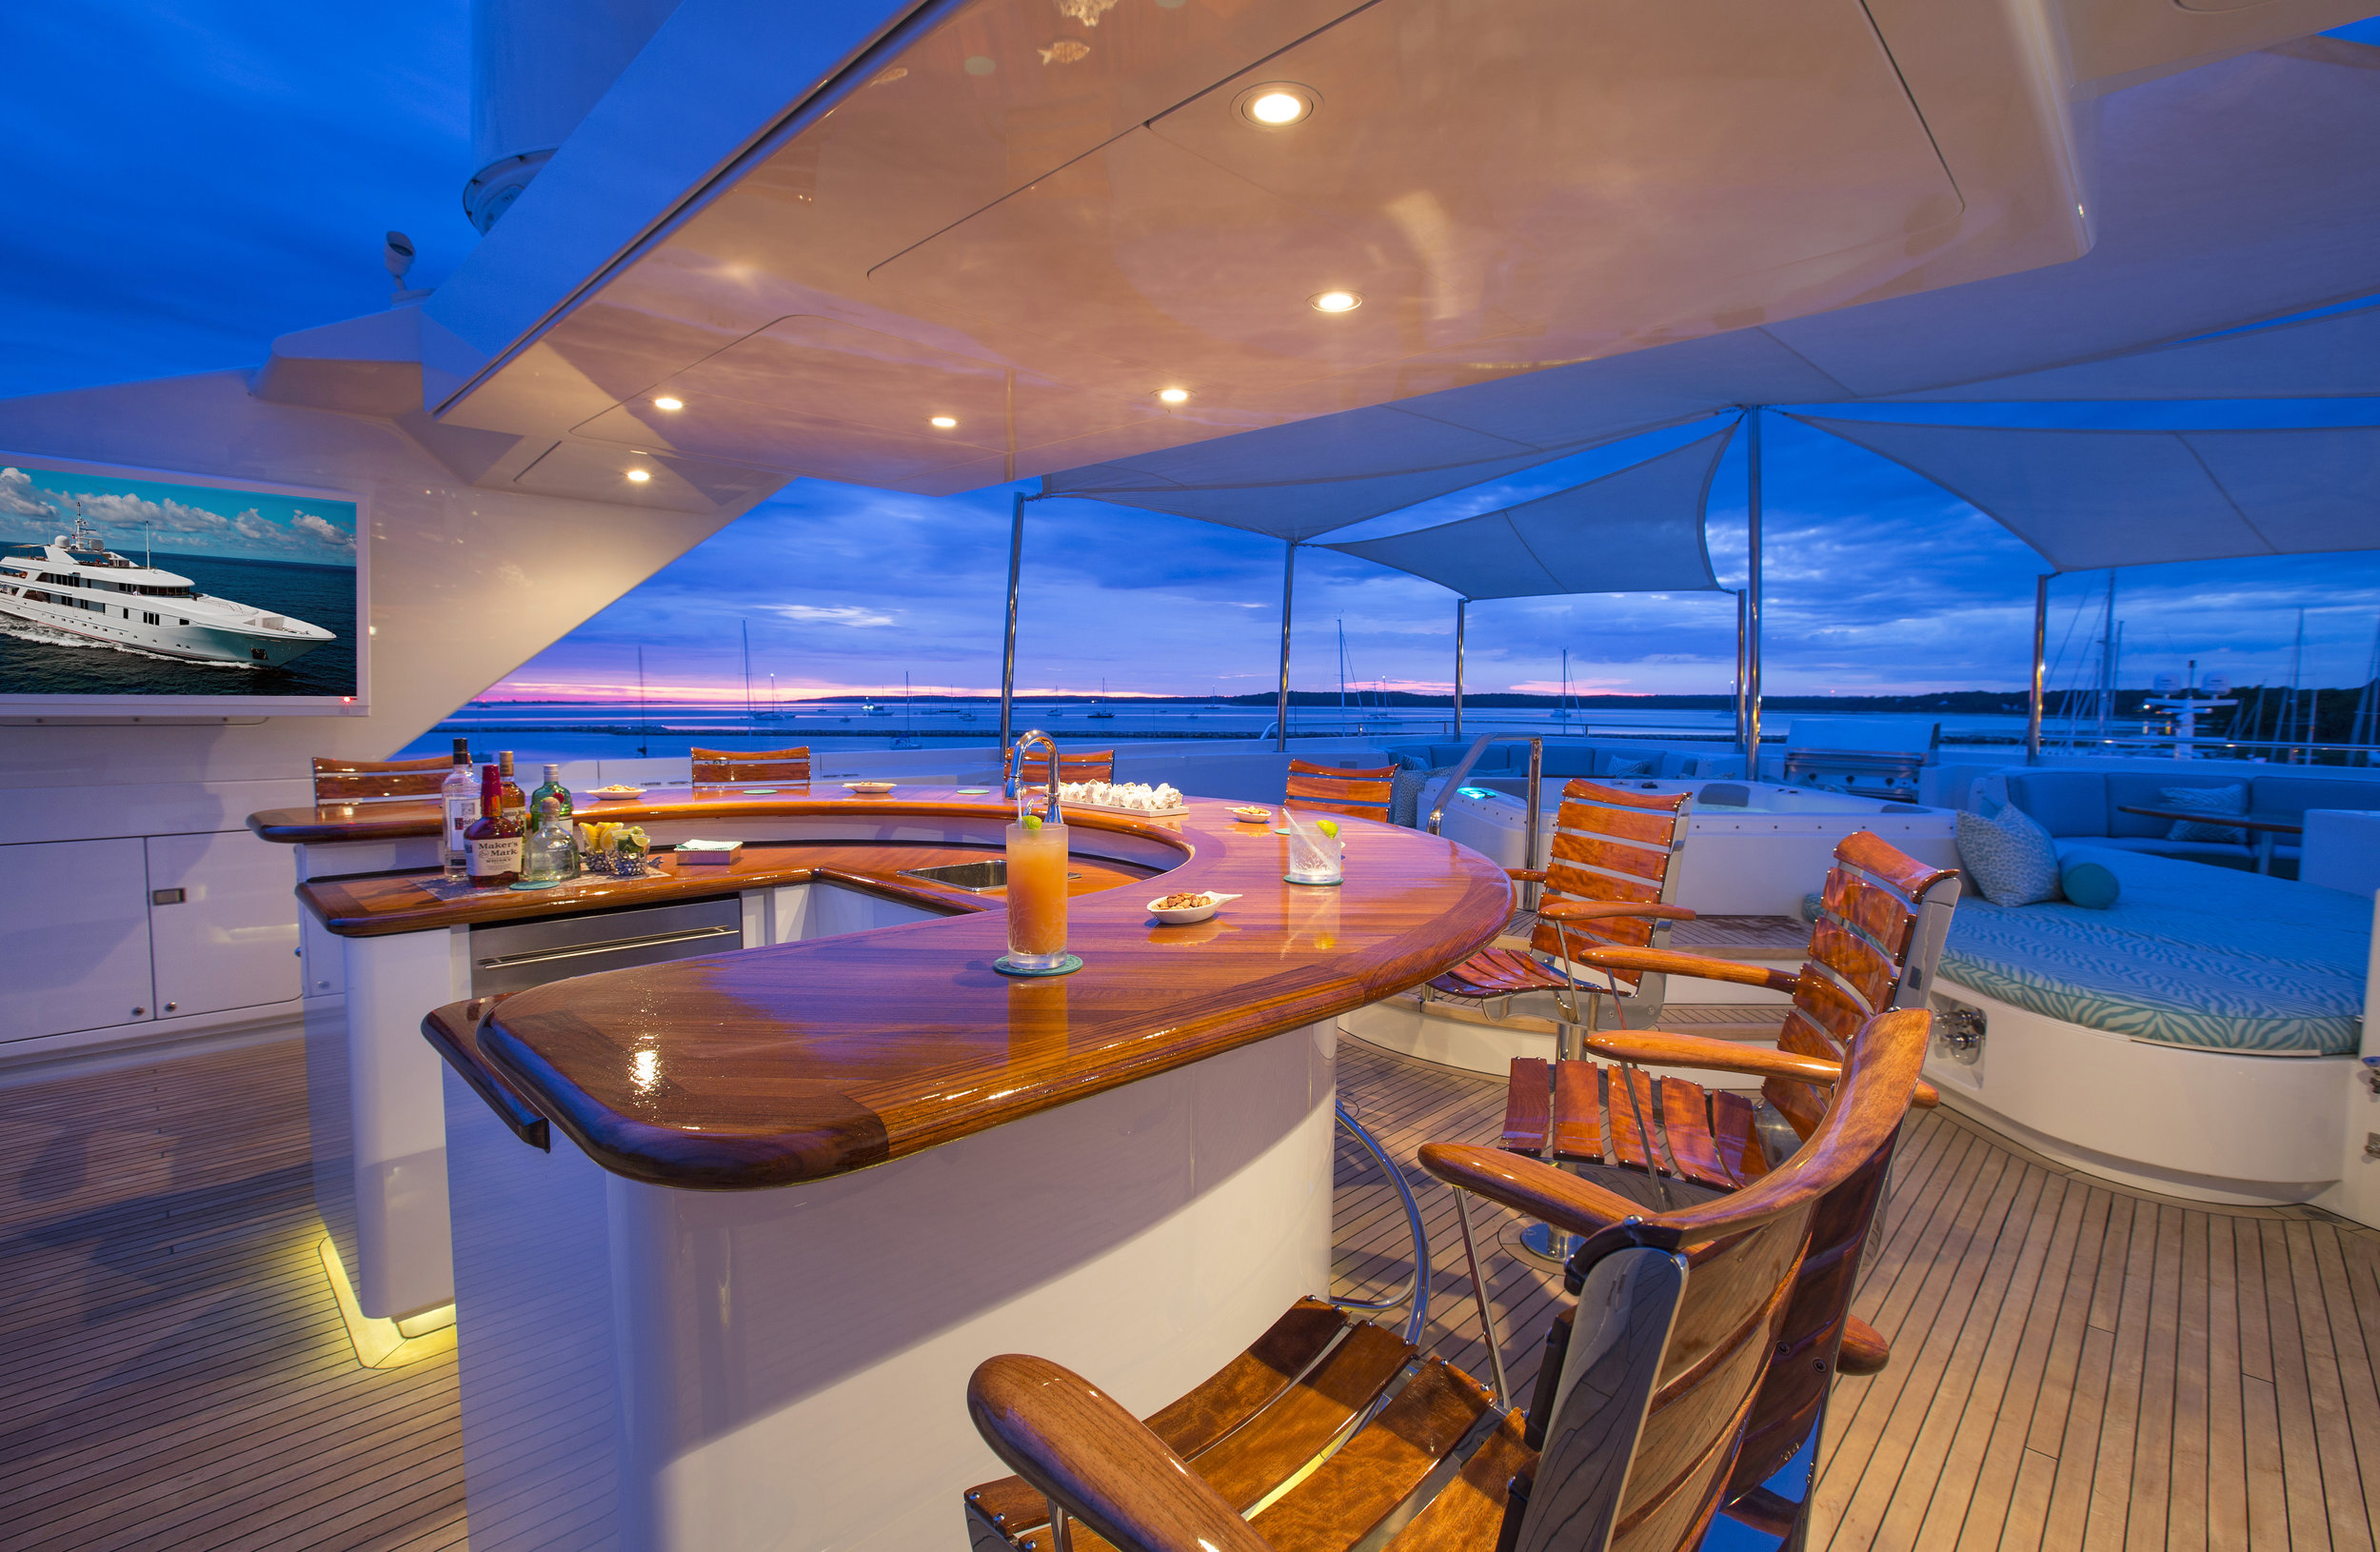 Interiors and details onboard Rhino, 154' Admiral motoryacht in Sag Harbor, NY.